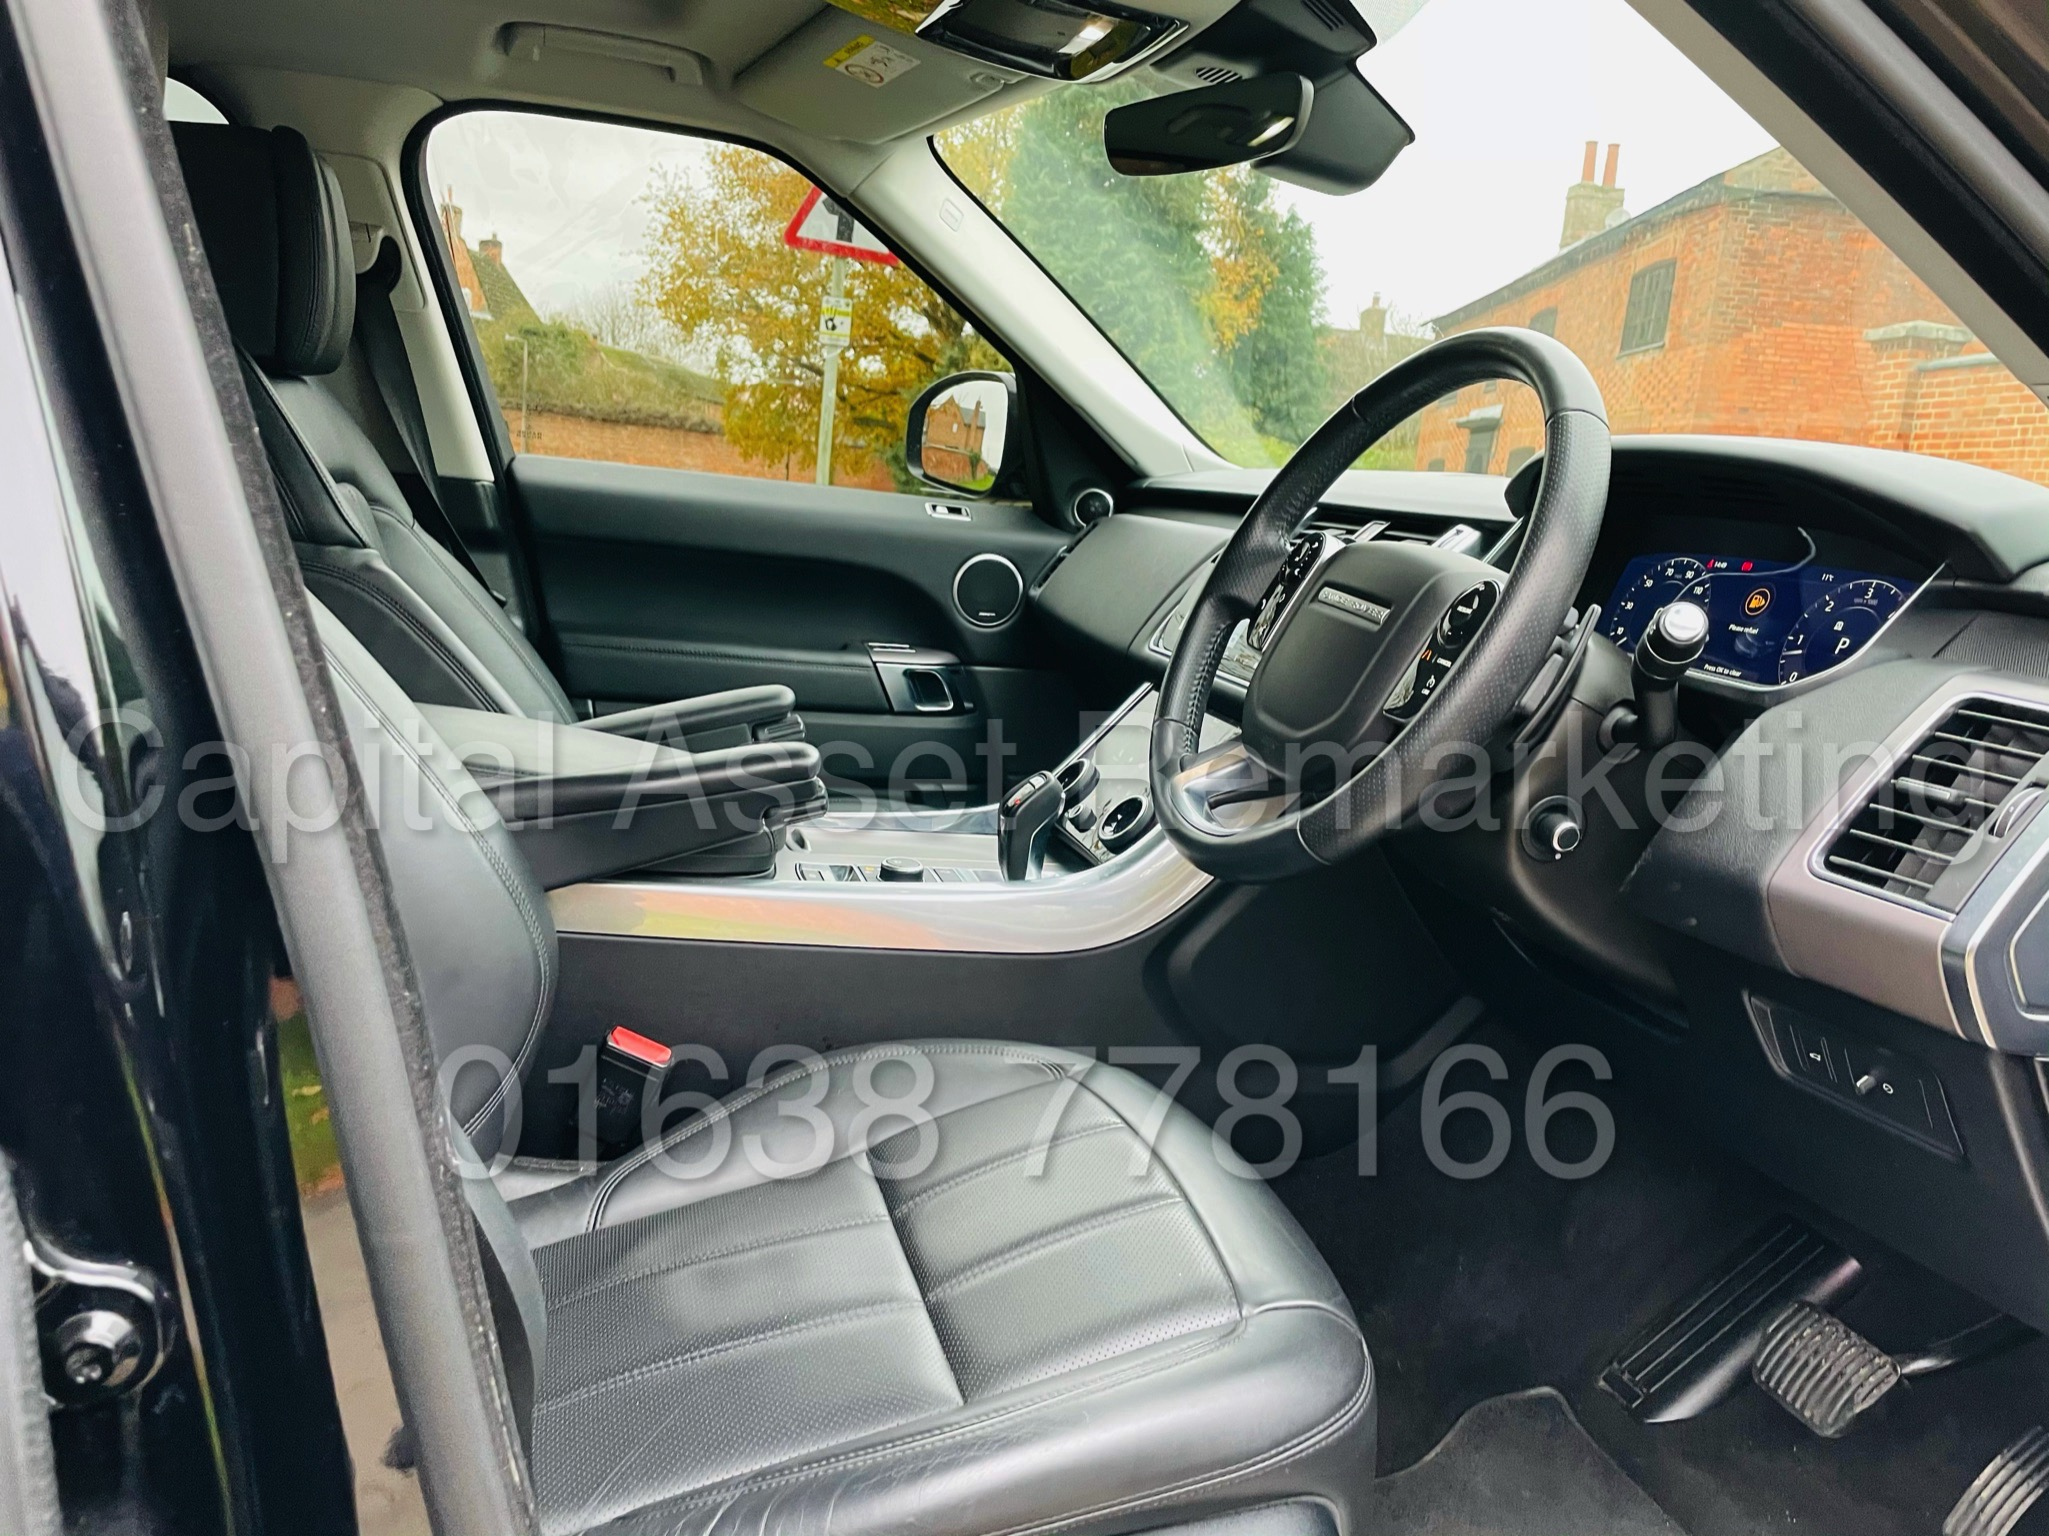 RANGE ROVER SPORT *HSE EDITION* SUV (2019 MODEL) '3.0 SDV6 - 306 BHP - 8 SPEED AUTO' *FULLY LOADED* - Image 42 of 56